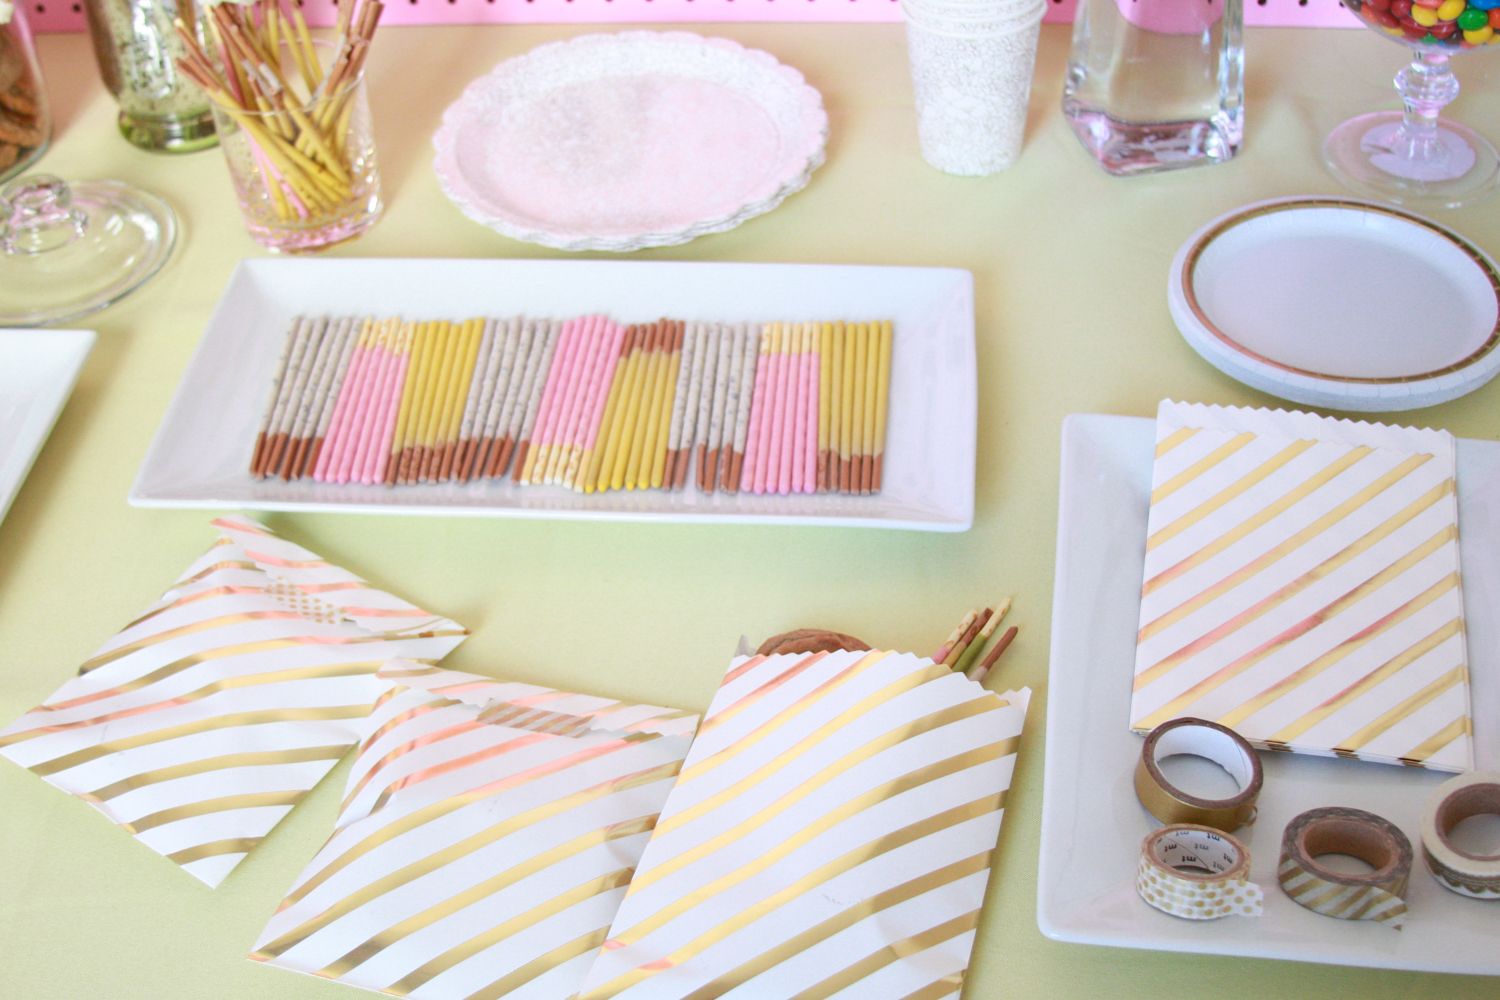 Tips for putting together your own easy dessert bar